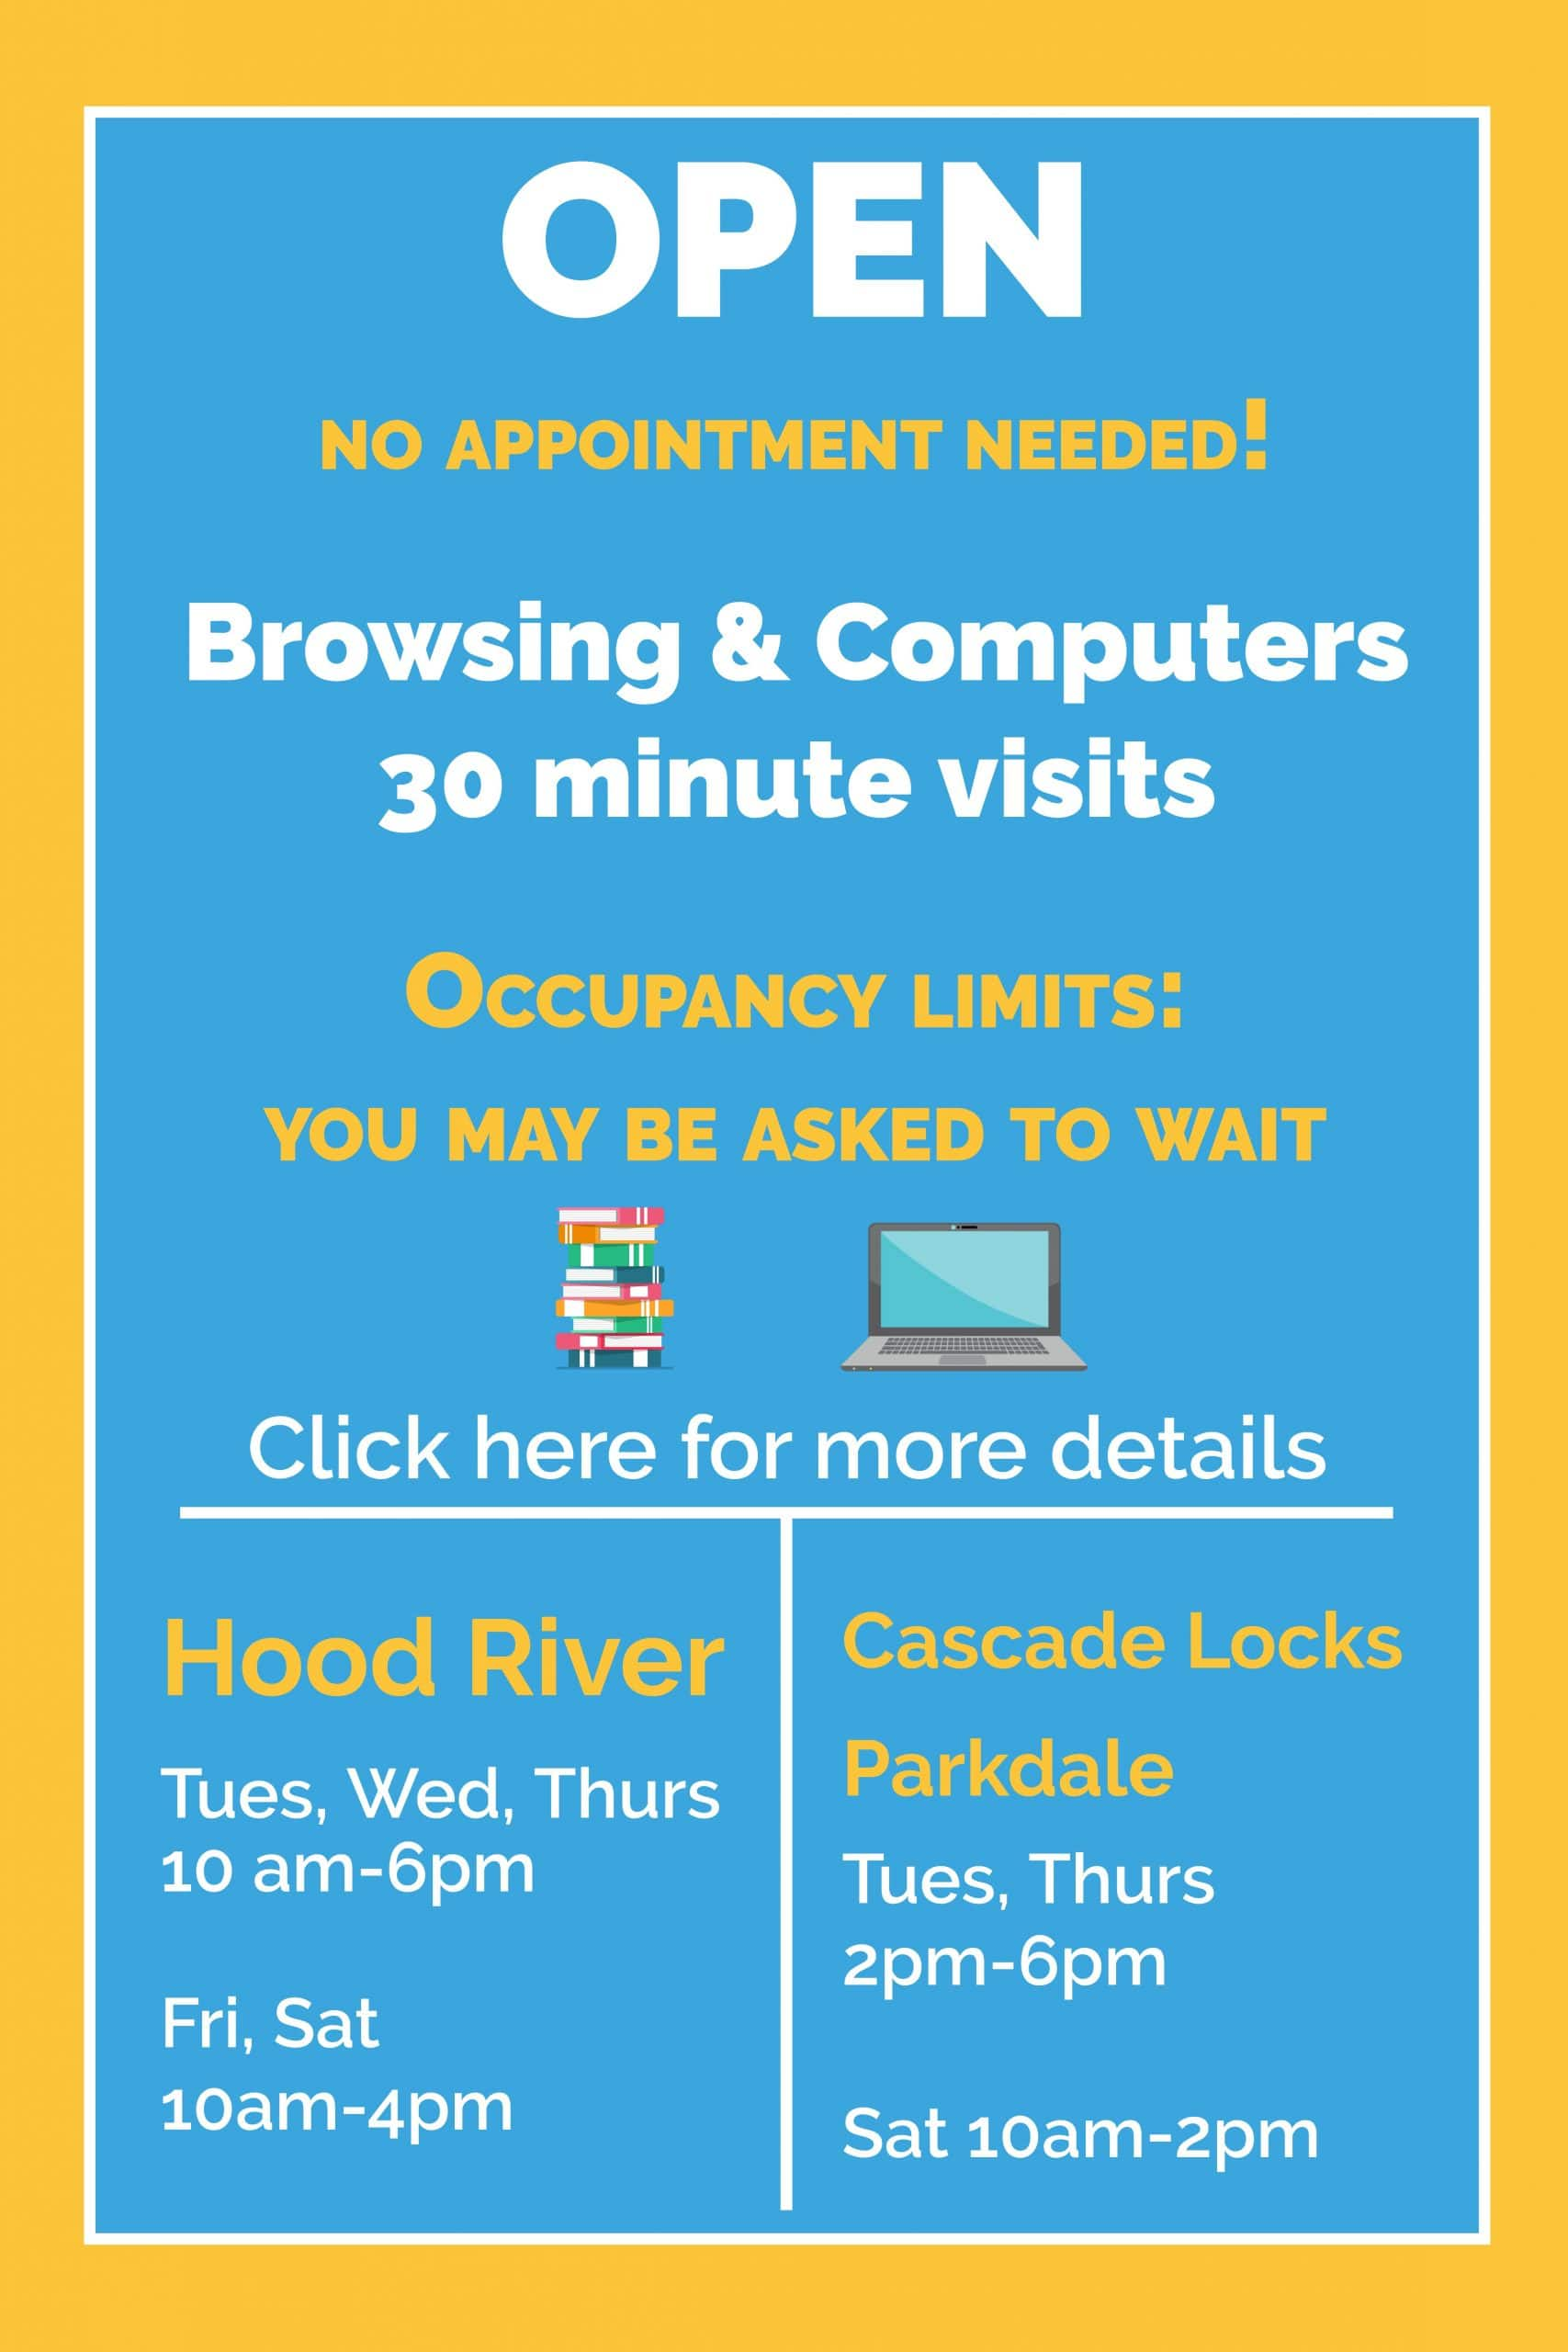 Curbside and Appointments